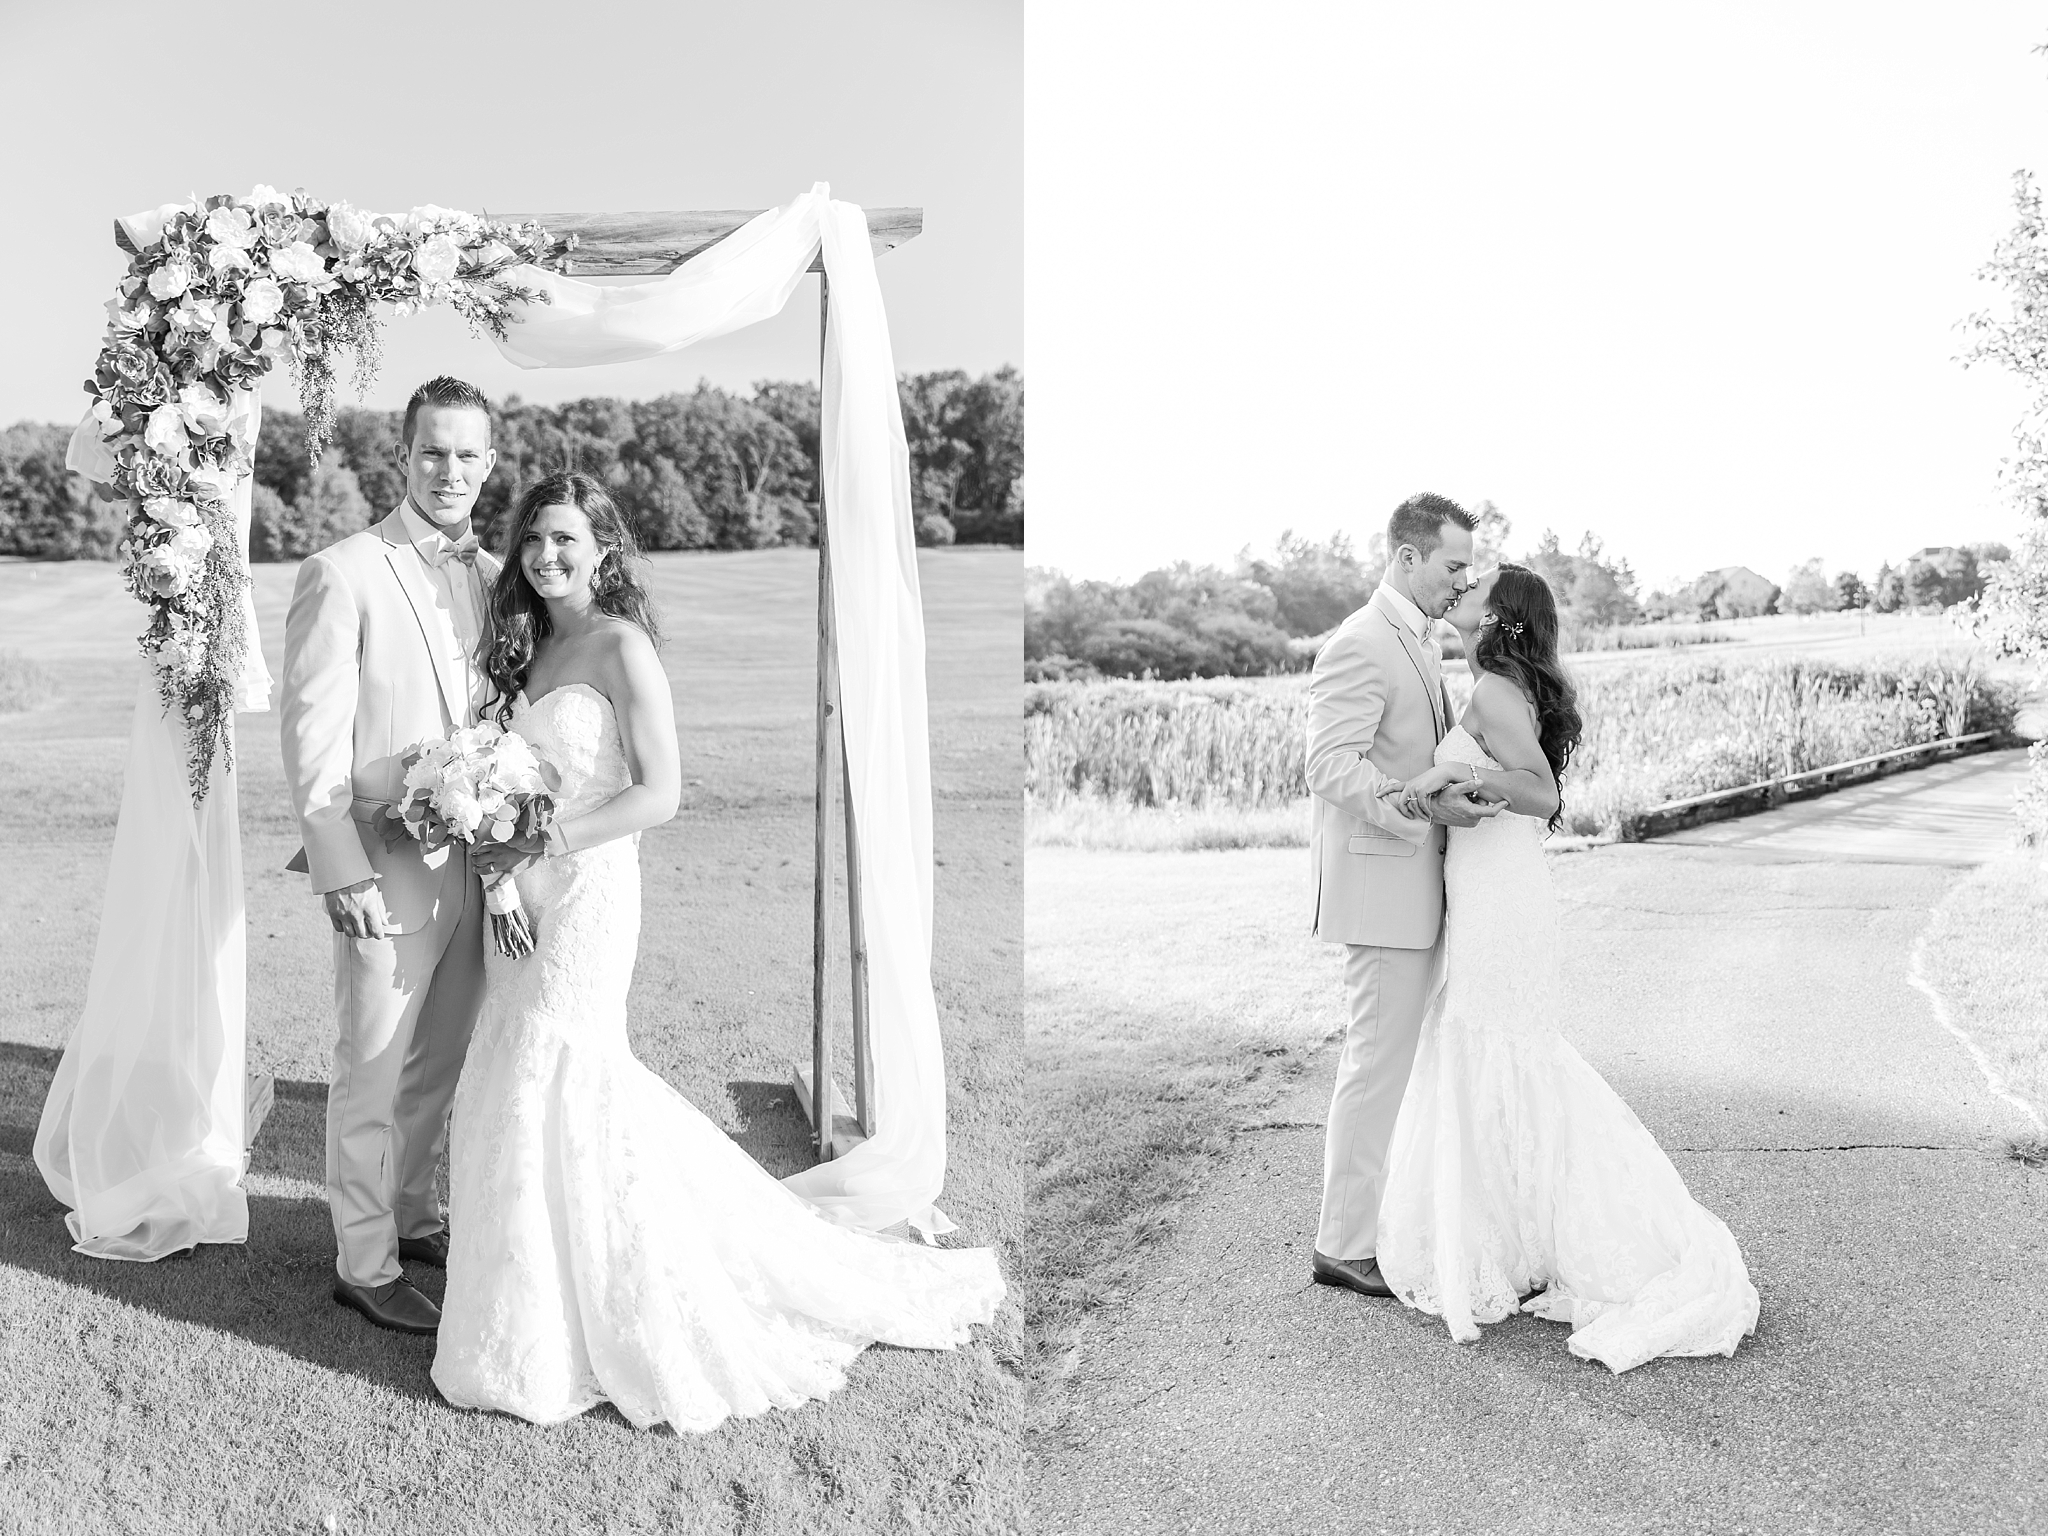 candid-timeless-wedding-photos-at-the-captains-club-in-grand-blanc-michigan-by-courtney-carolyn-photography_0073.jpg